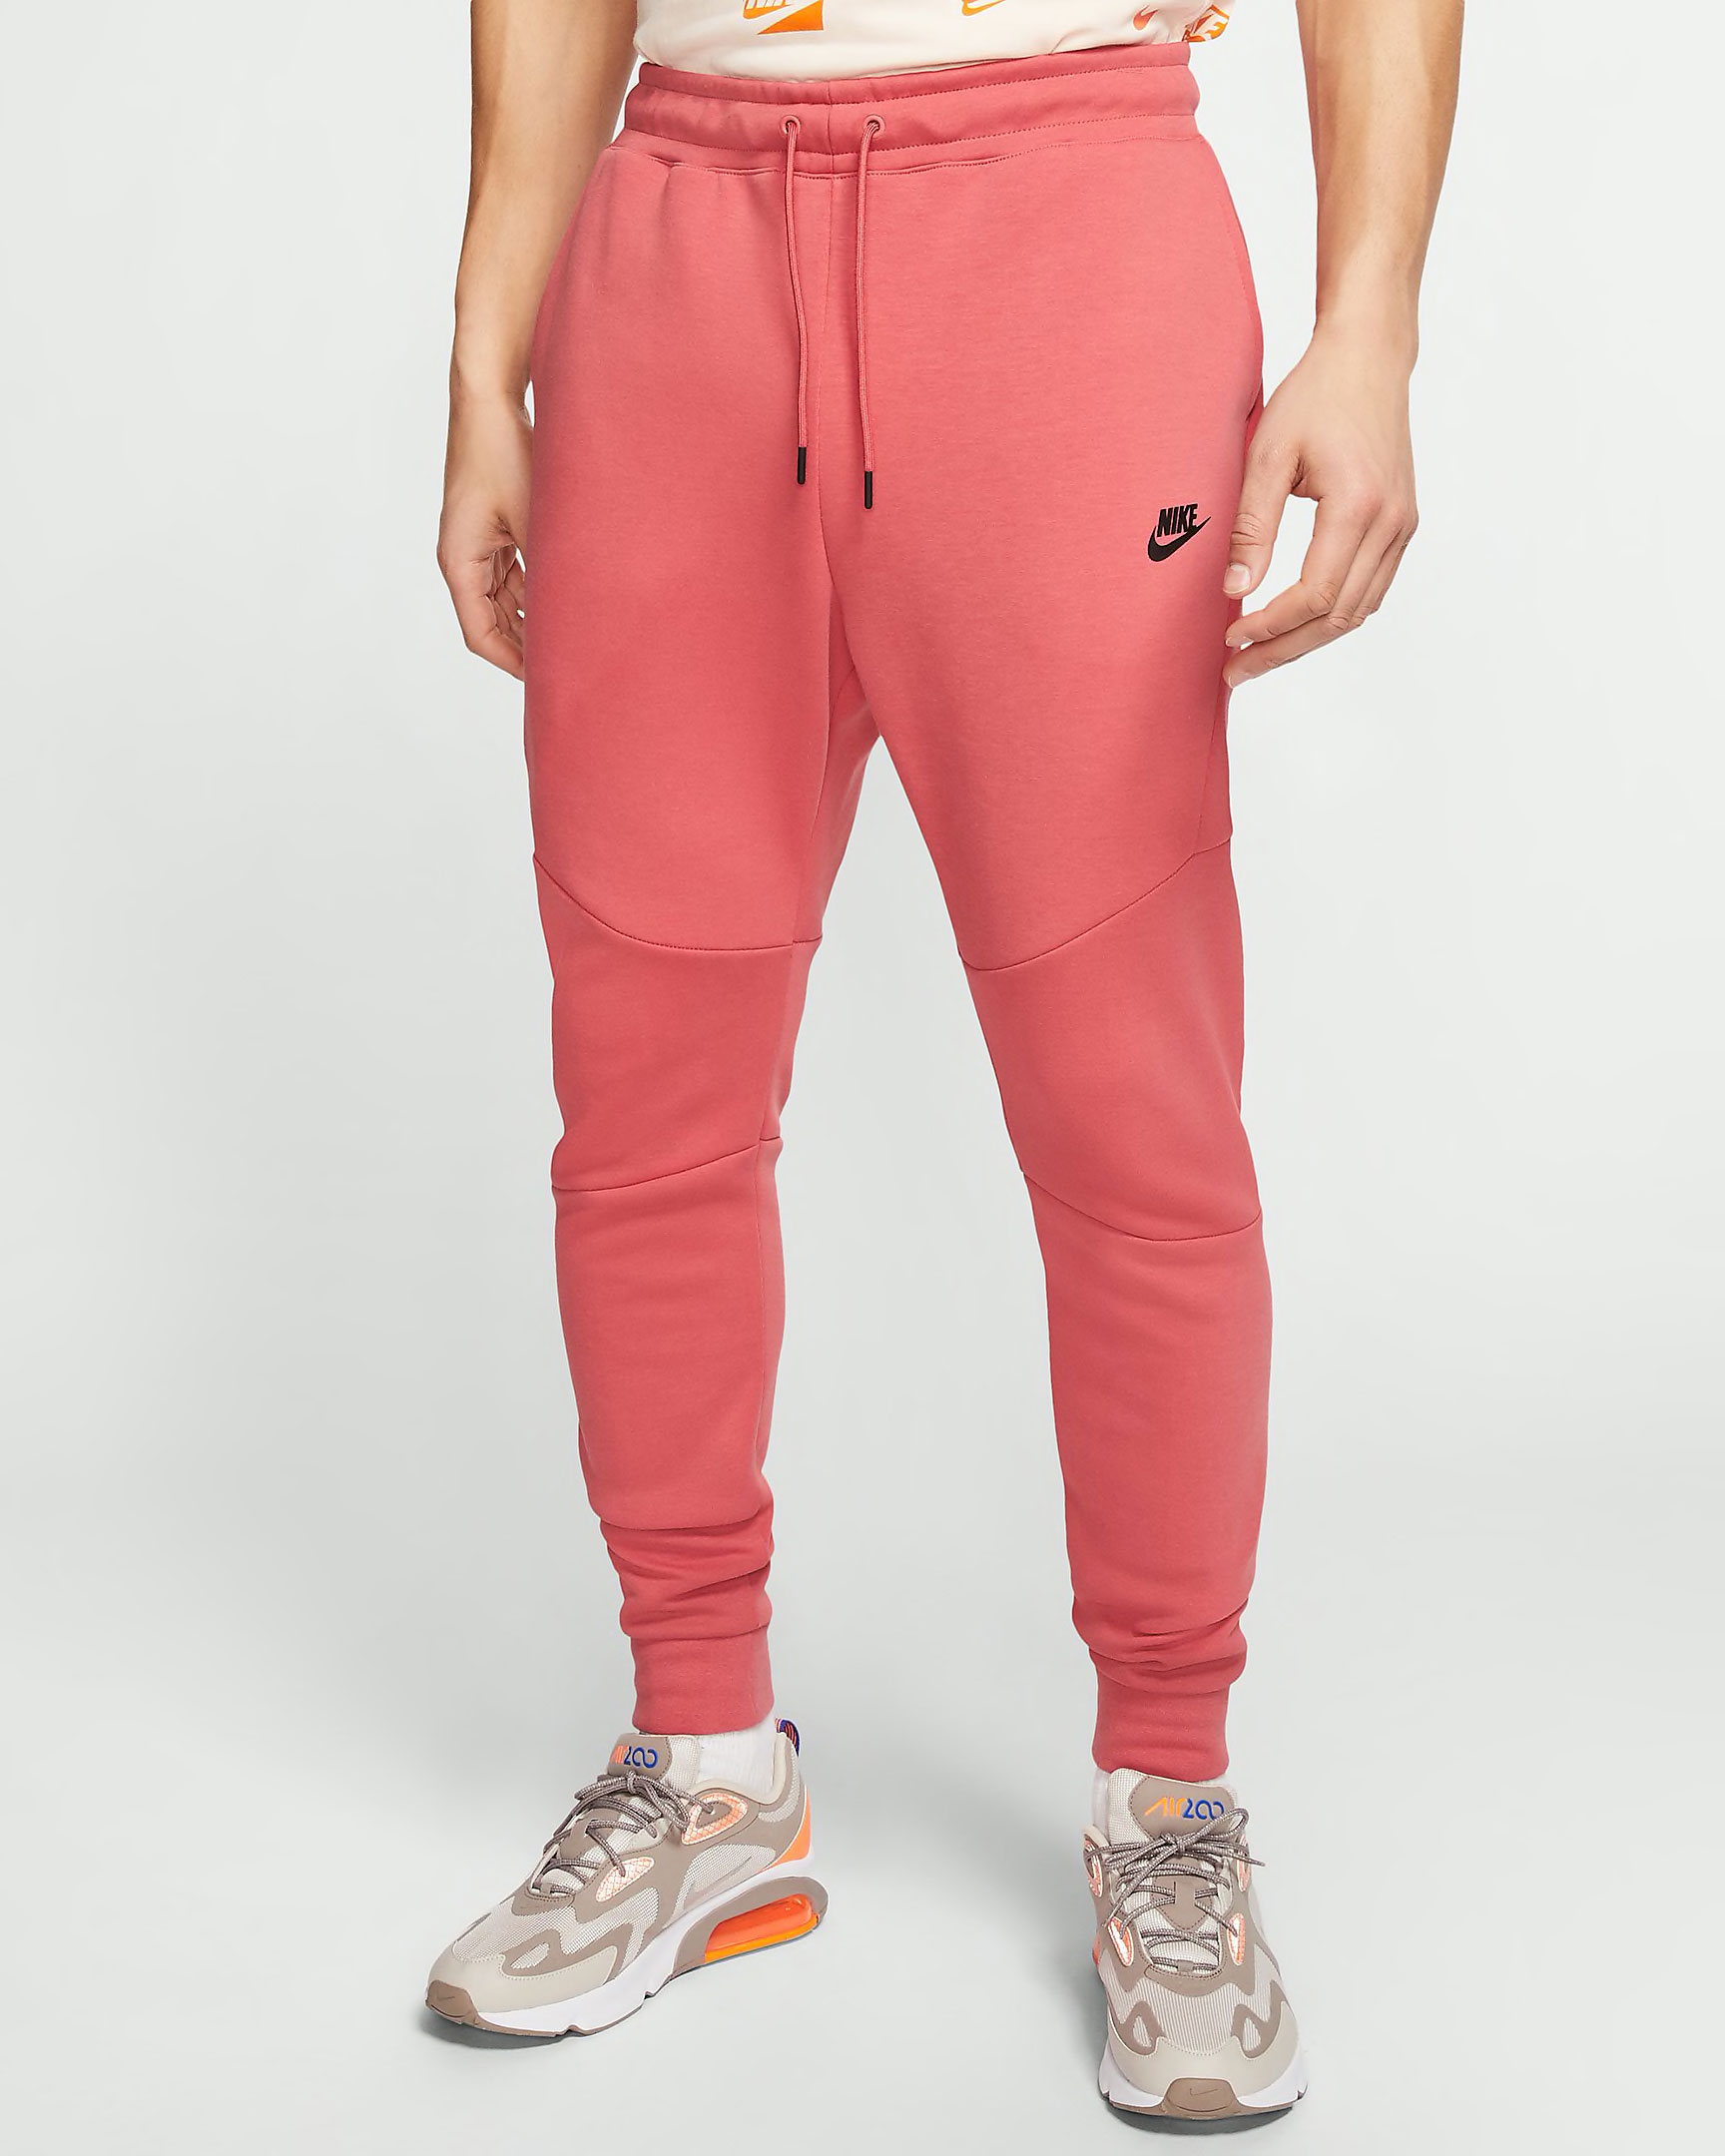 nike-infrared-tech-fleece-pants-1